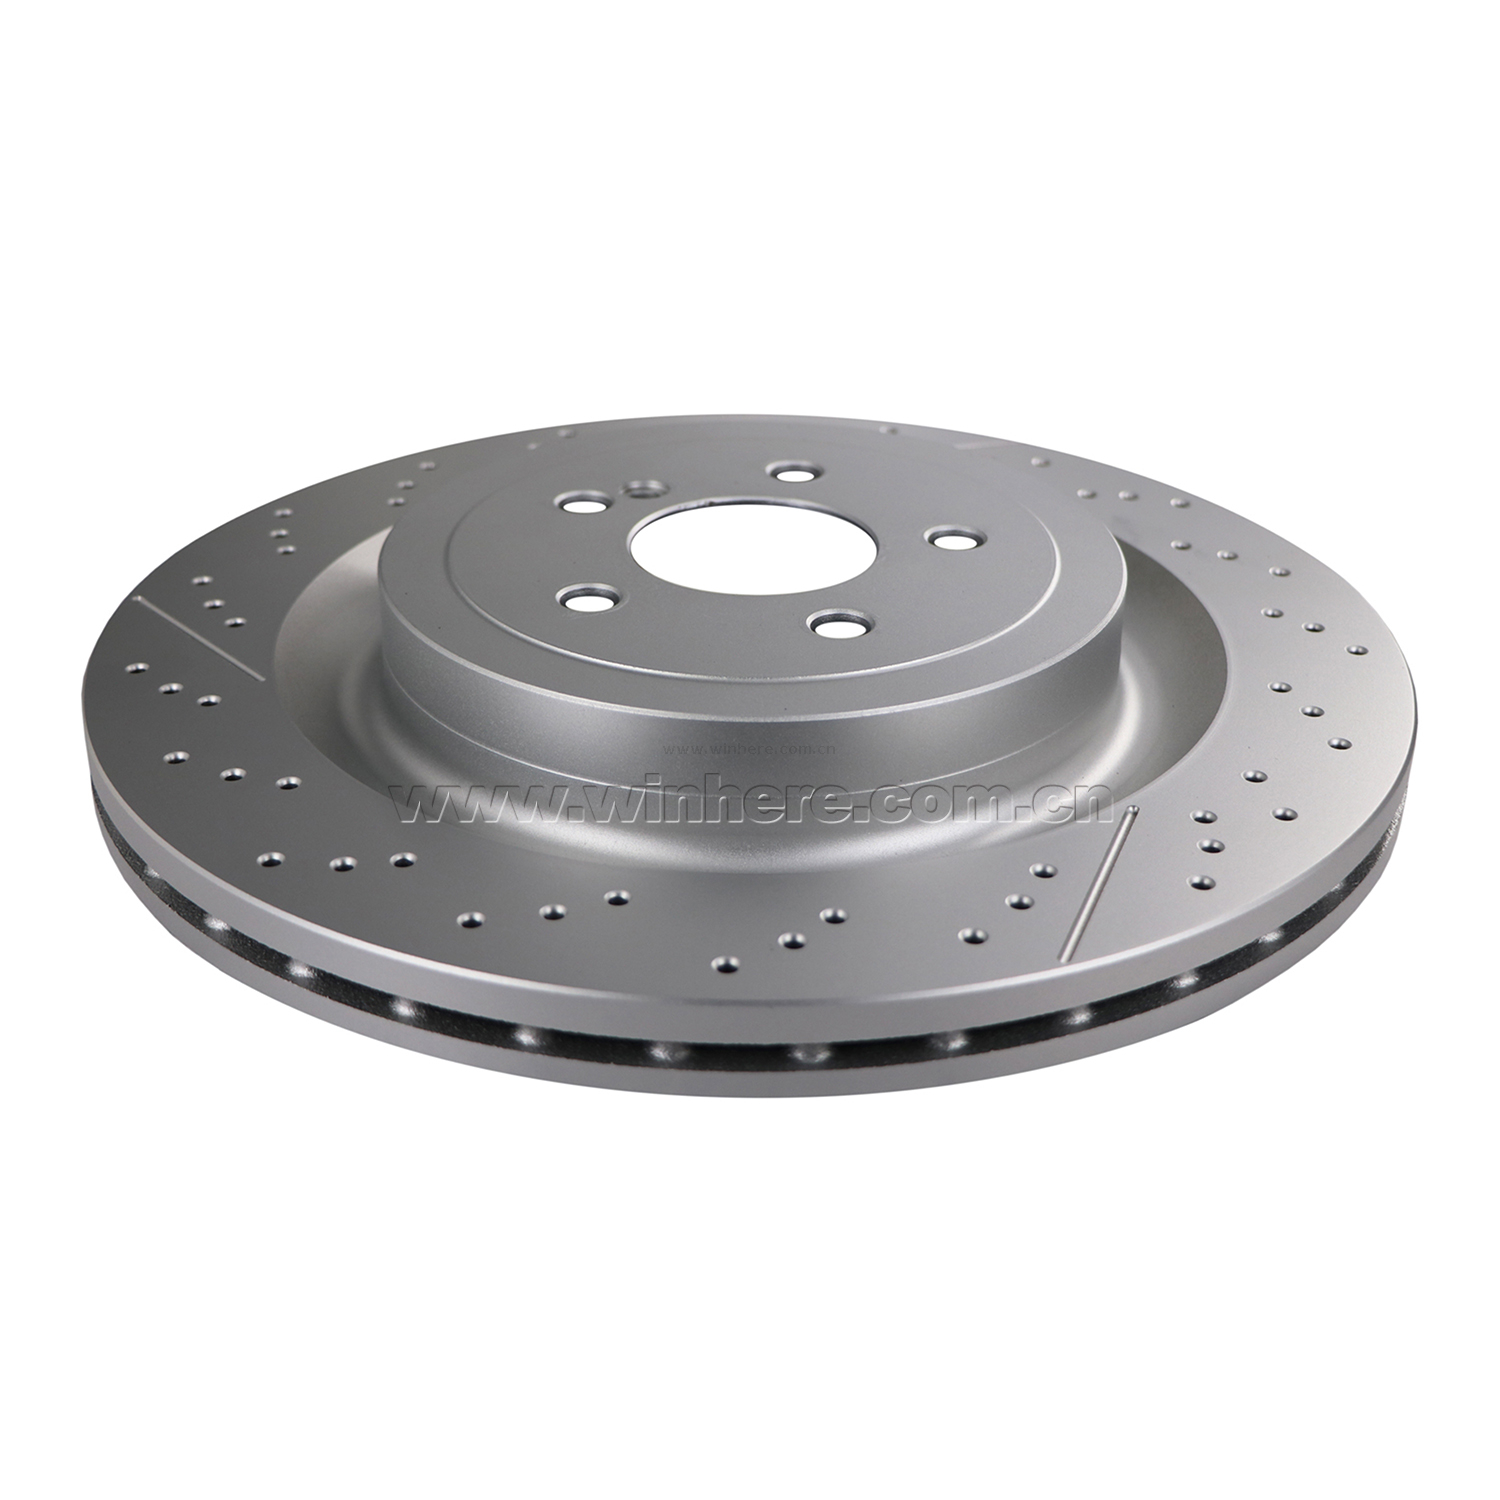 Painted Rear Brake Disc for MERCEDES-BENZ ECE R90